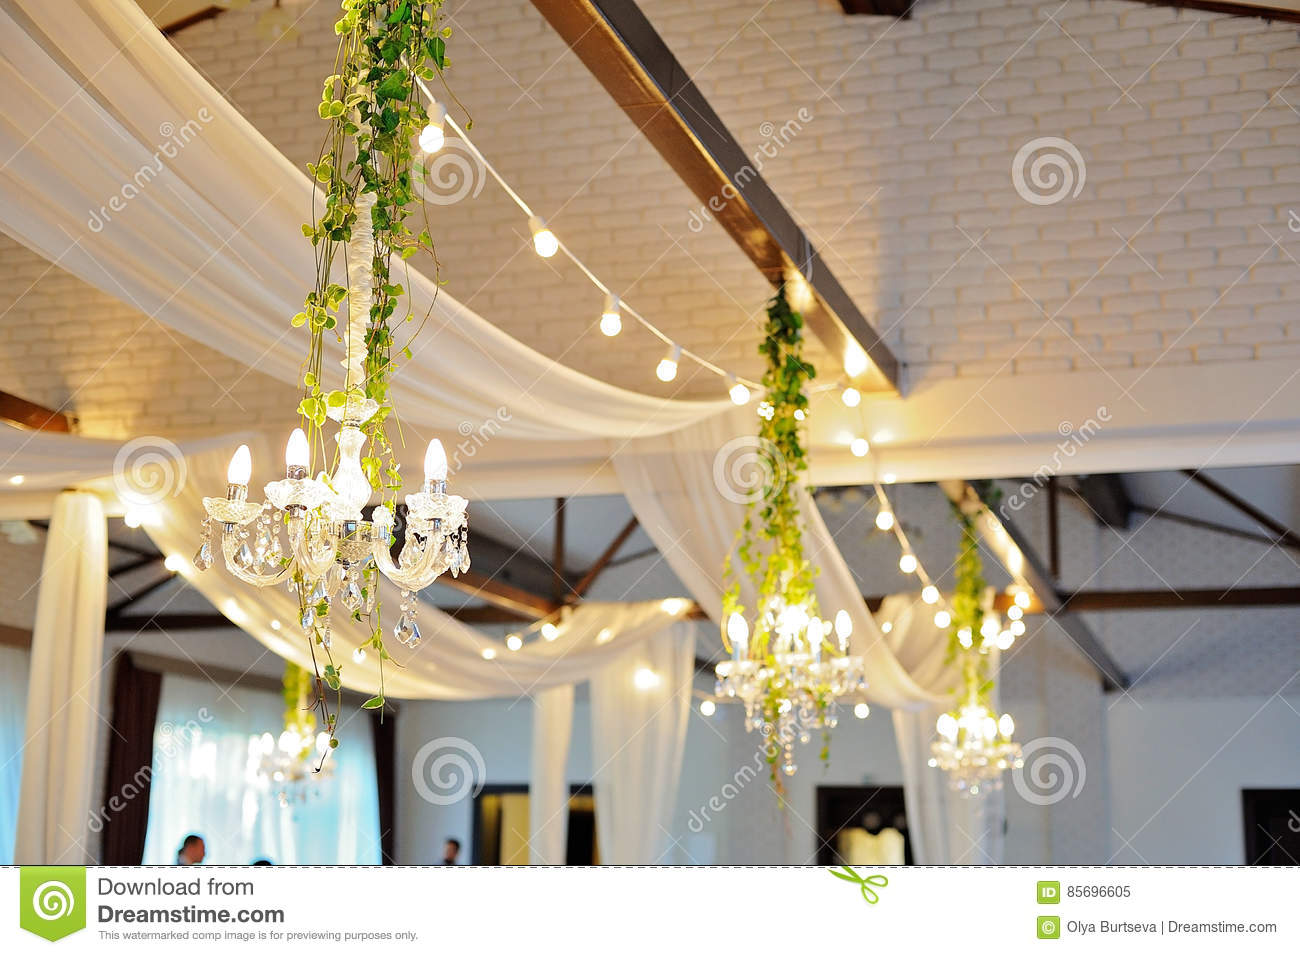 Ceiling Decor With Tulle And Eclectic Chandeliers Stock Image ...